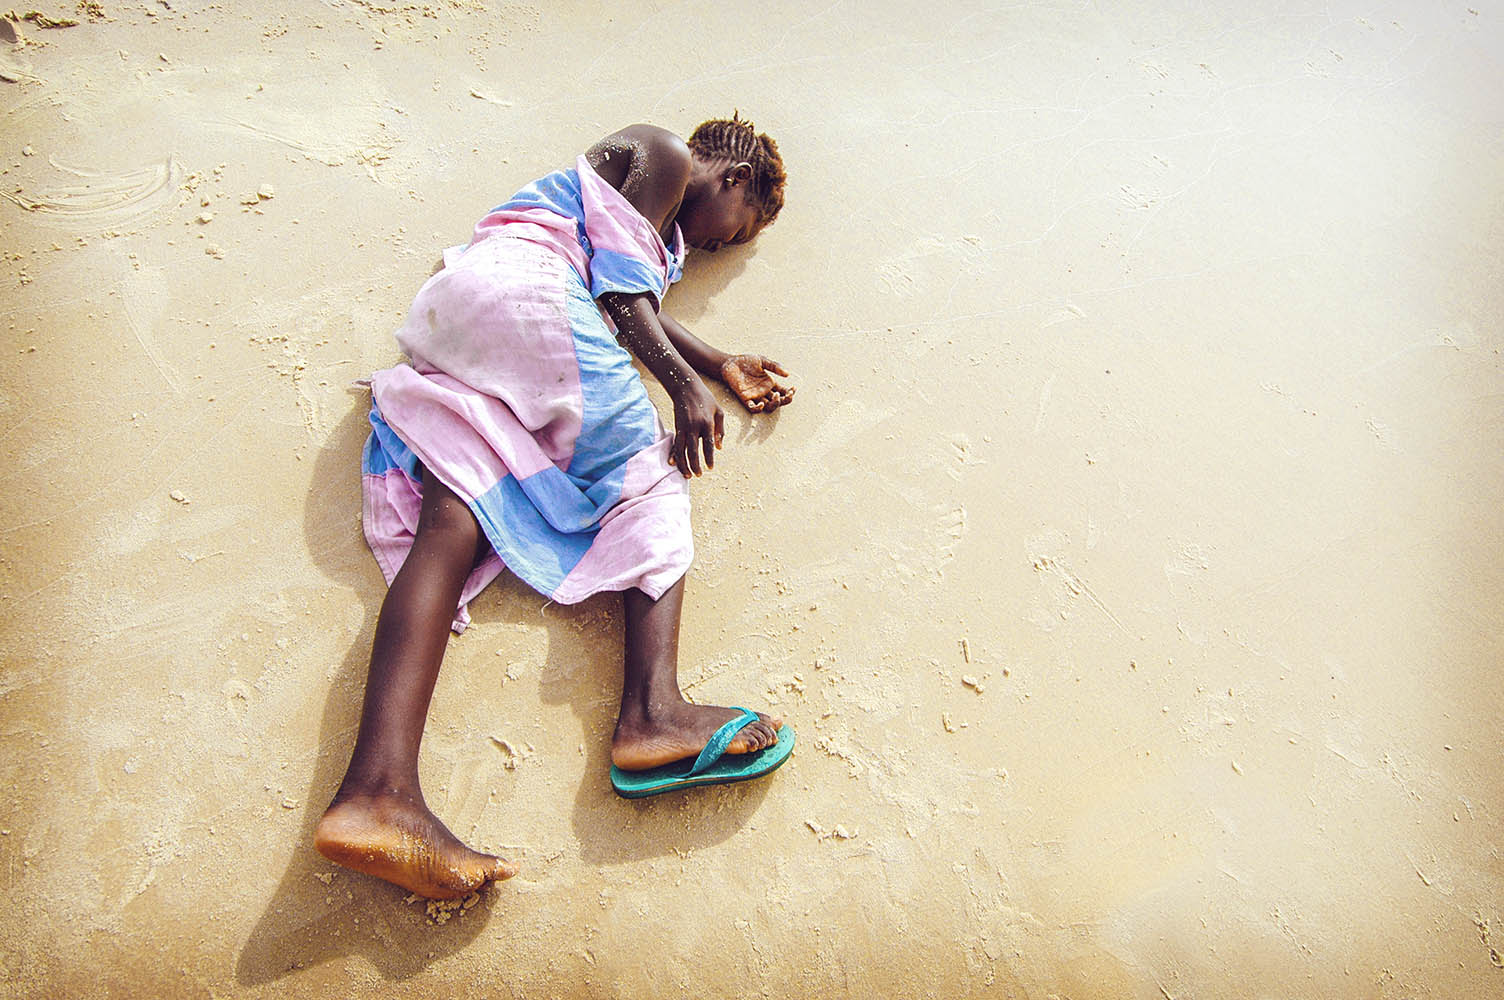 SENEGAL - SEPTEMBER 16: unidentified girl from the island of Car